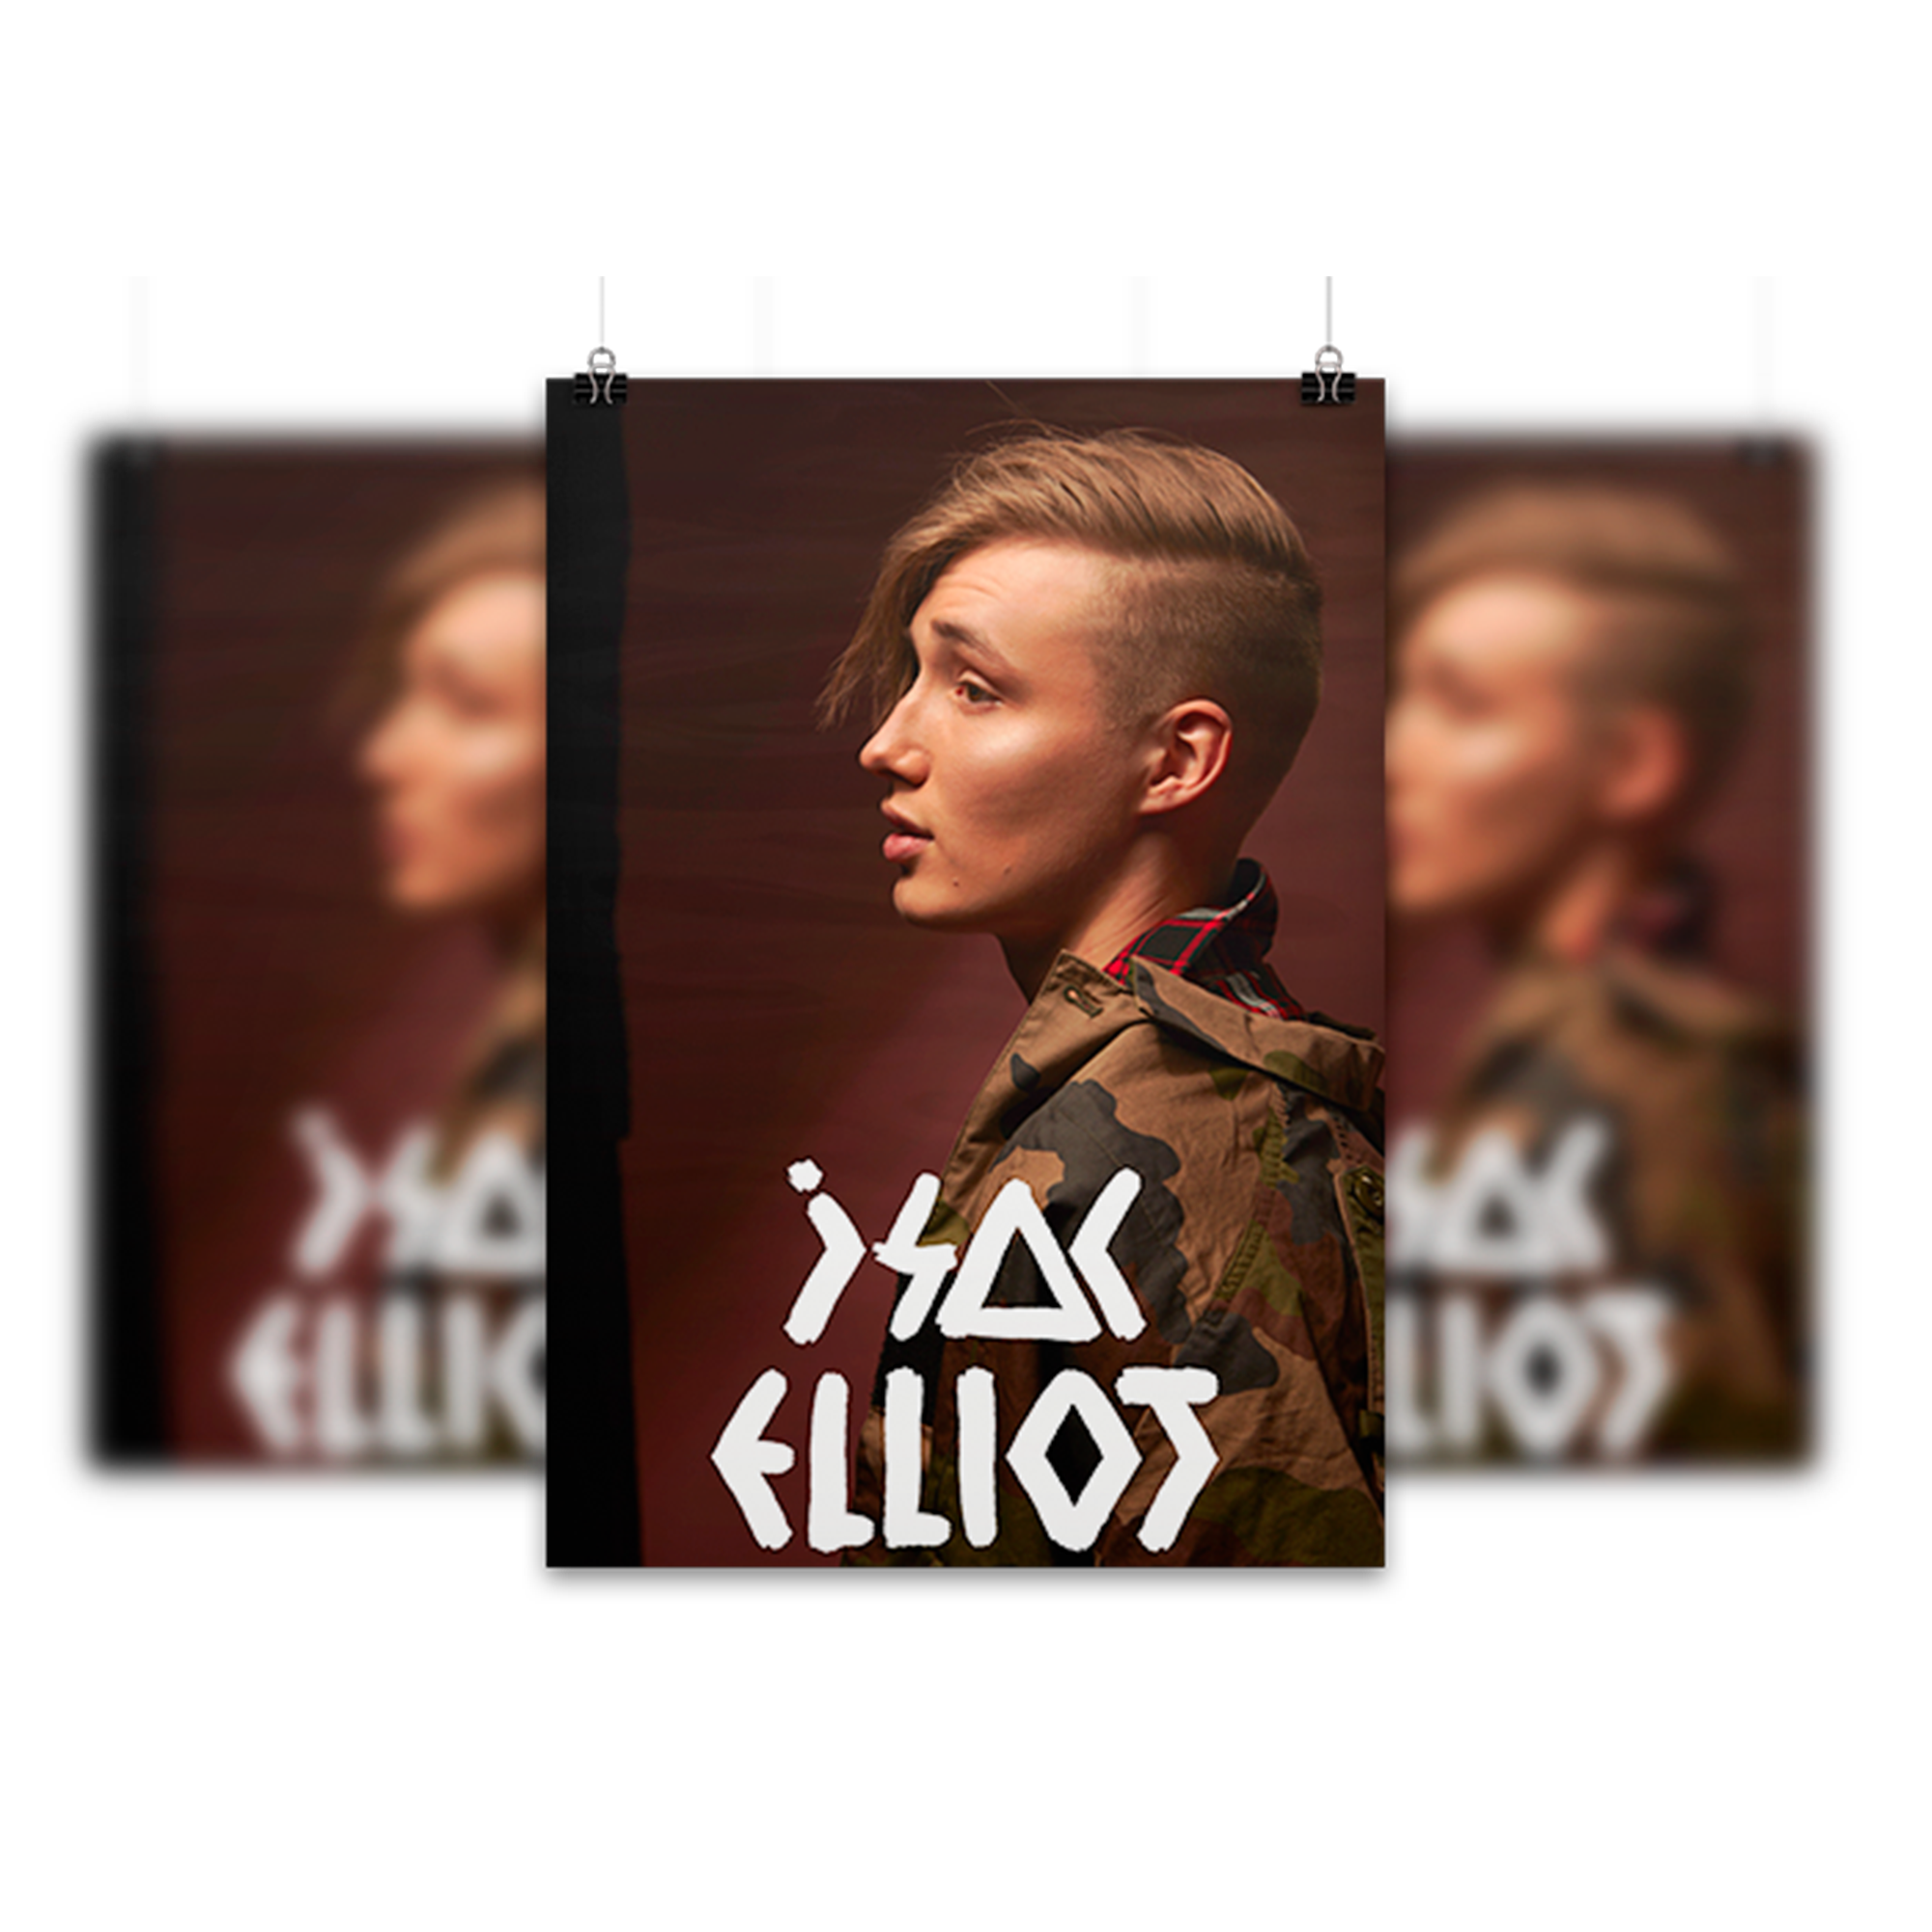 Isac Elliot: Poster